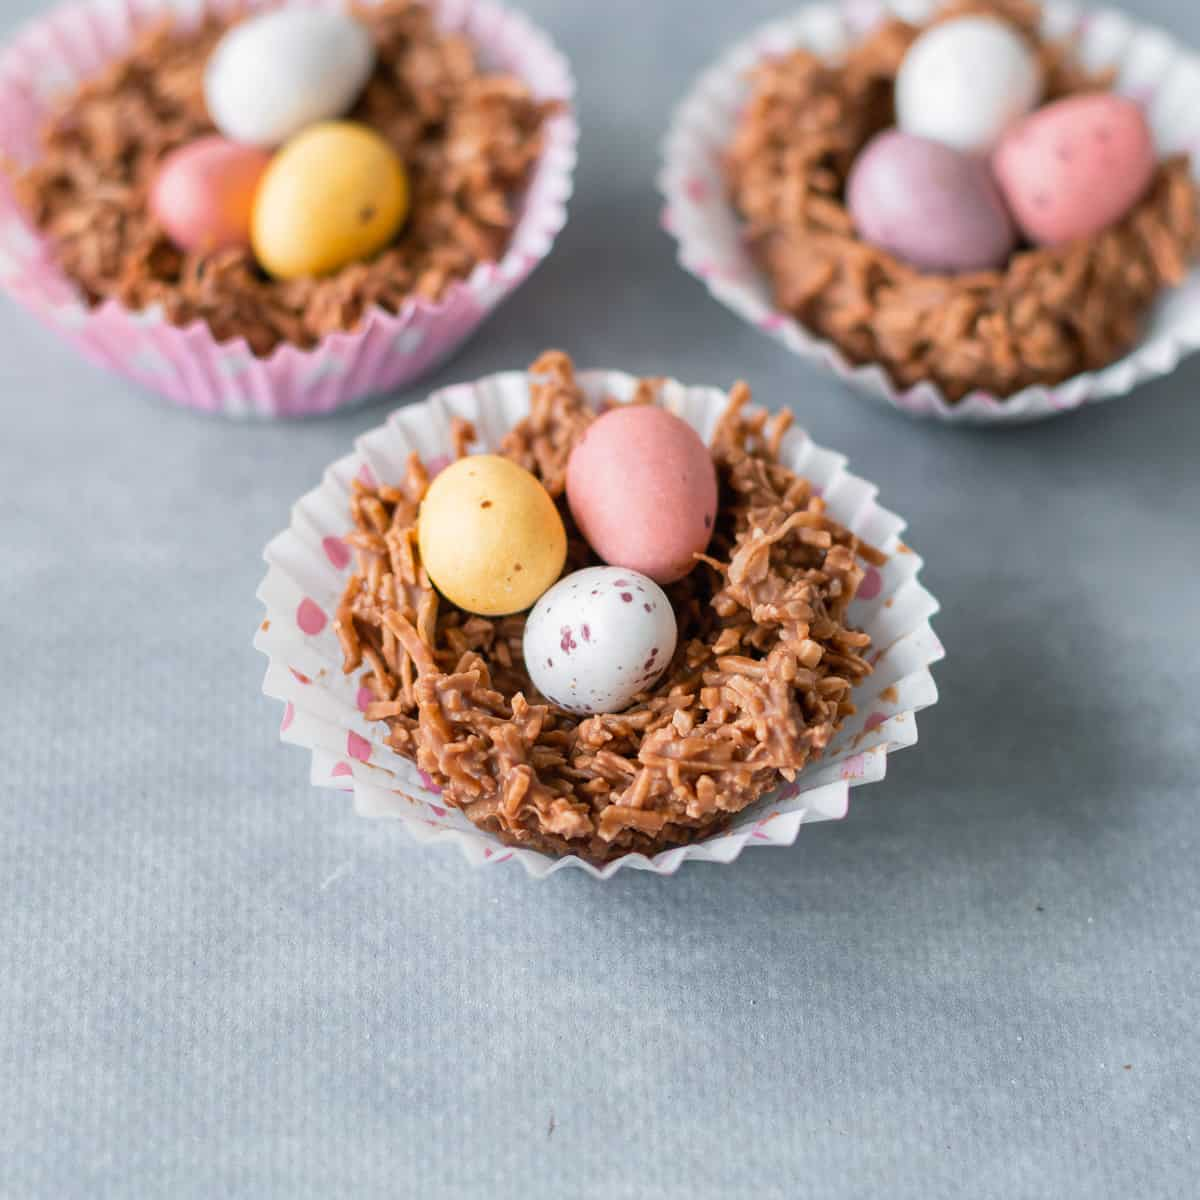 easter egg nests with 3 small easter eggs in each one